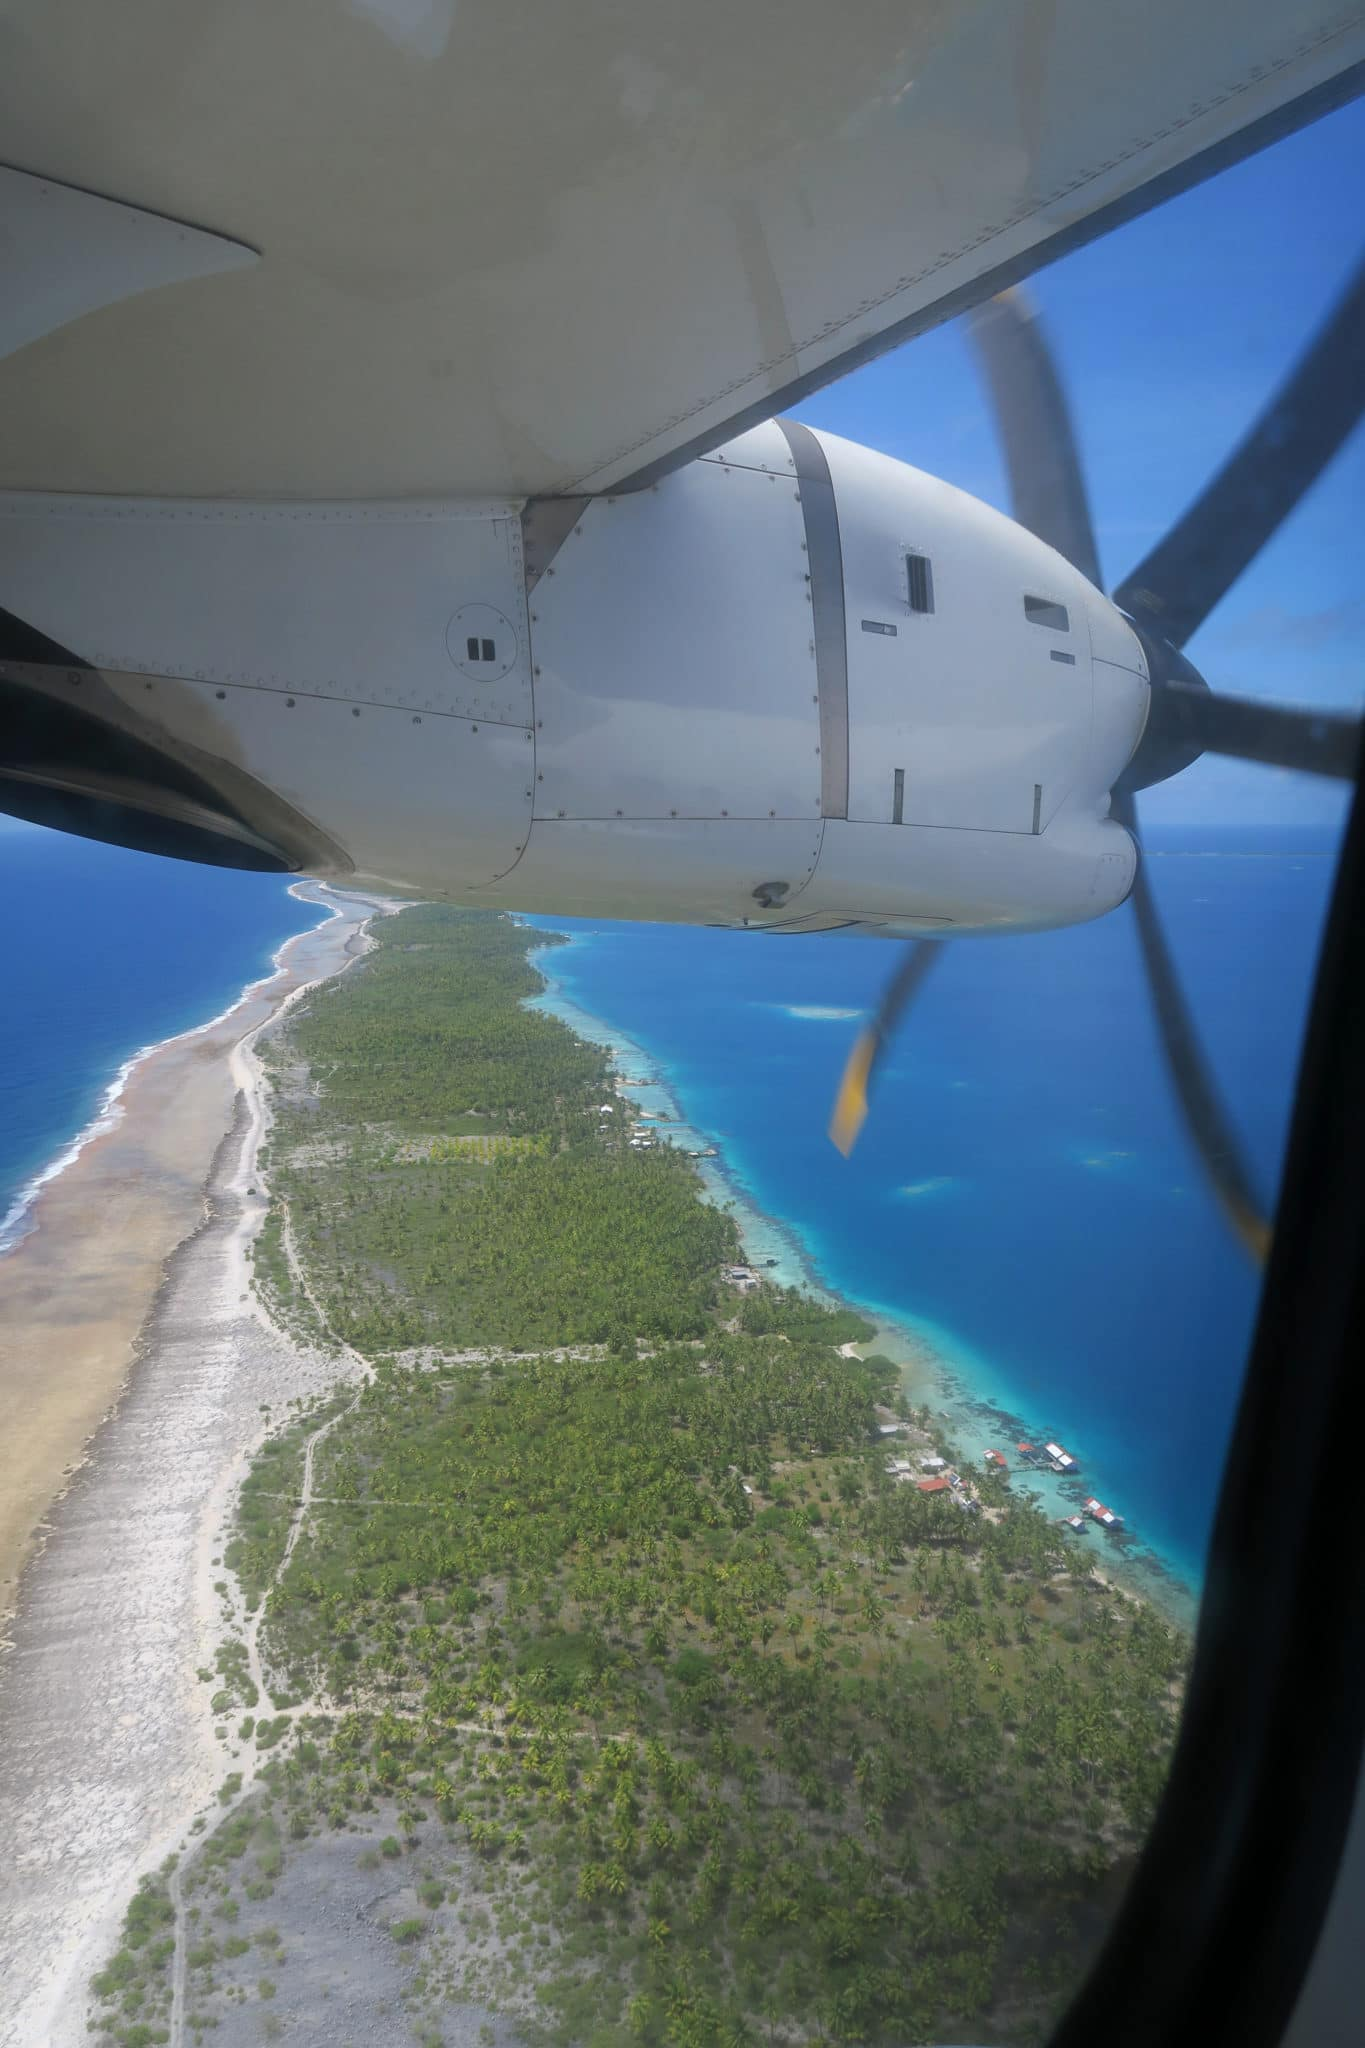 Tuamotu from the sky